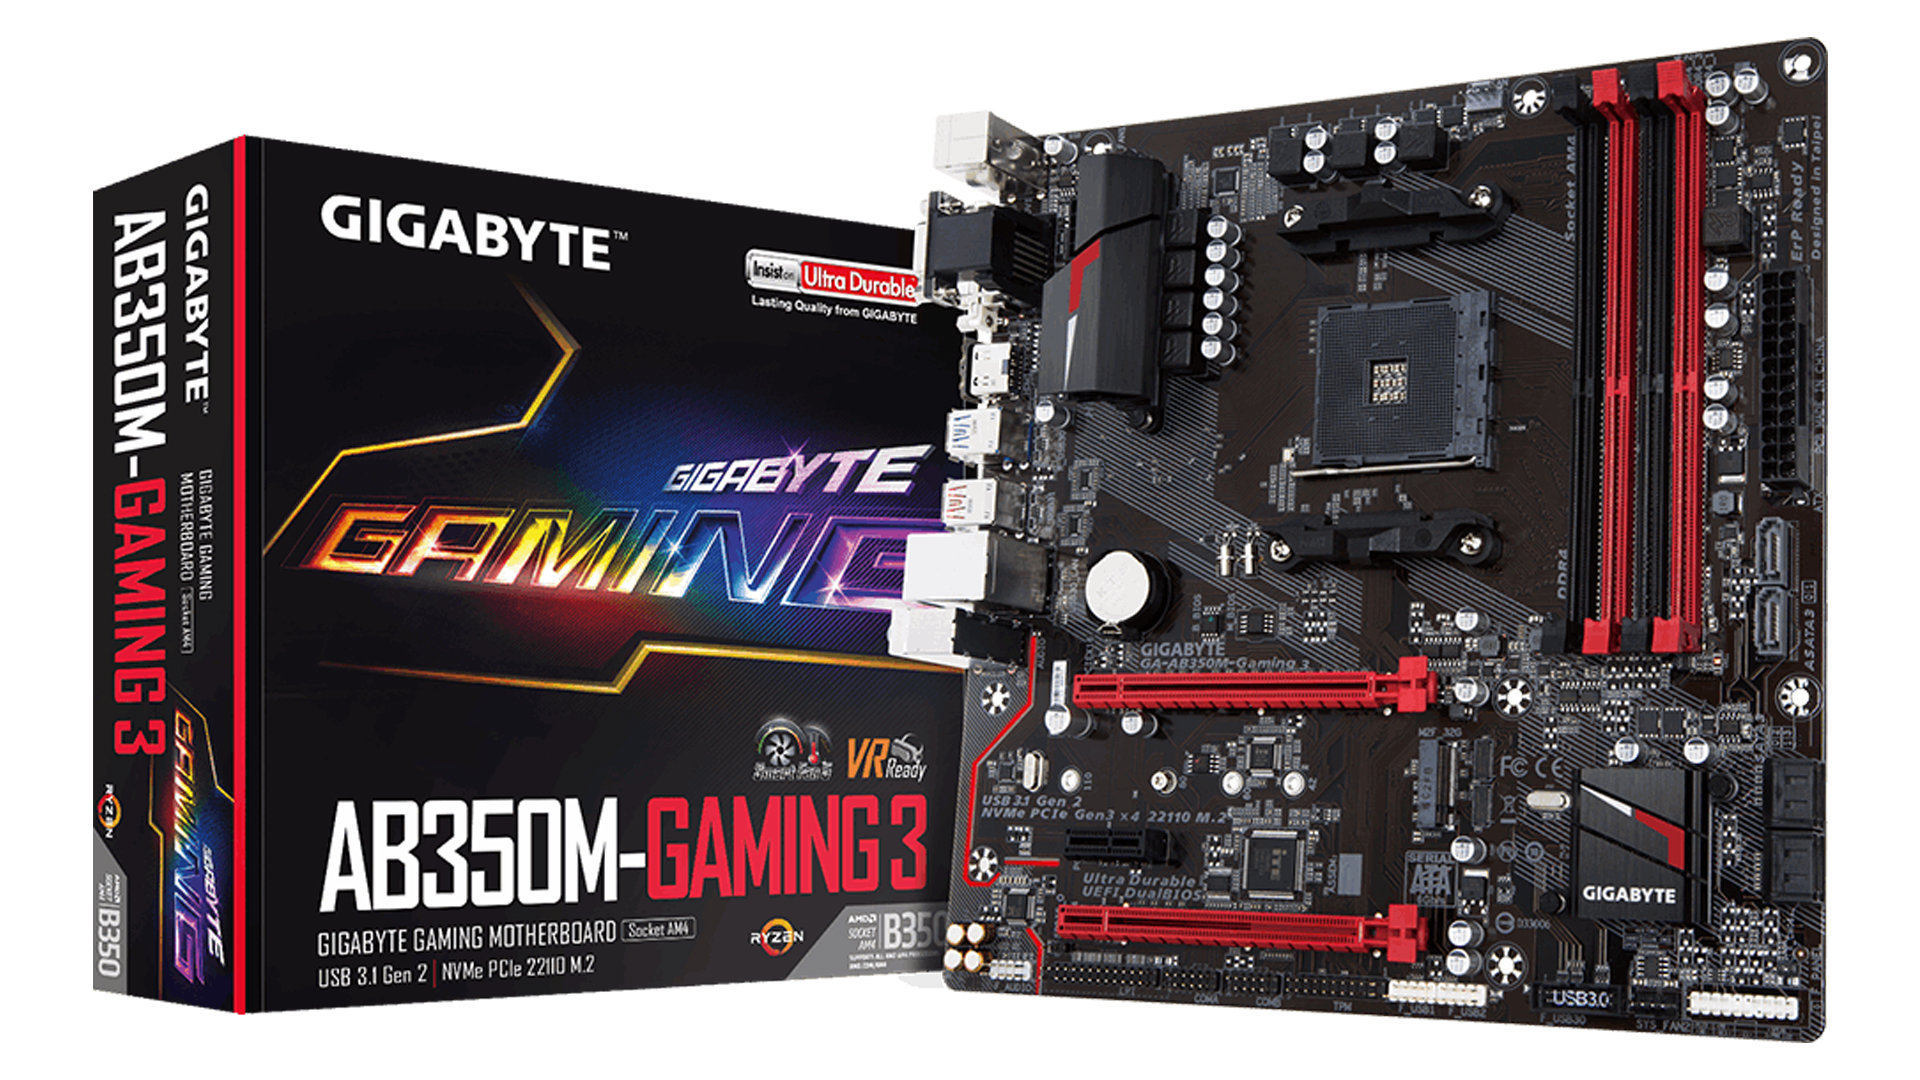 the first of many from Gigabyte and others moving forward Expect this motherboard to drop in price to make way for some newer stuff this year